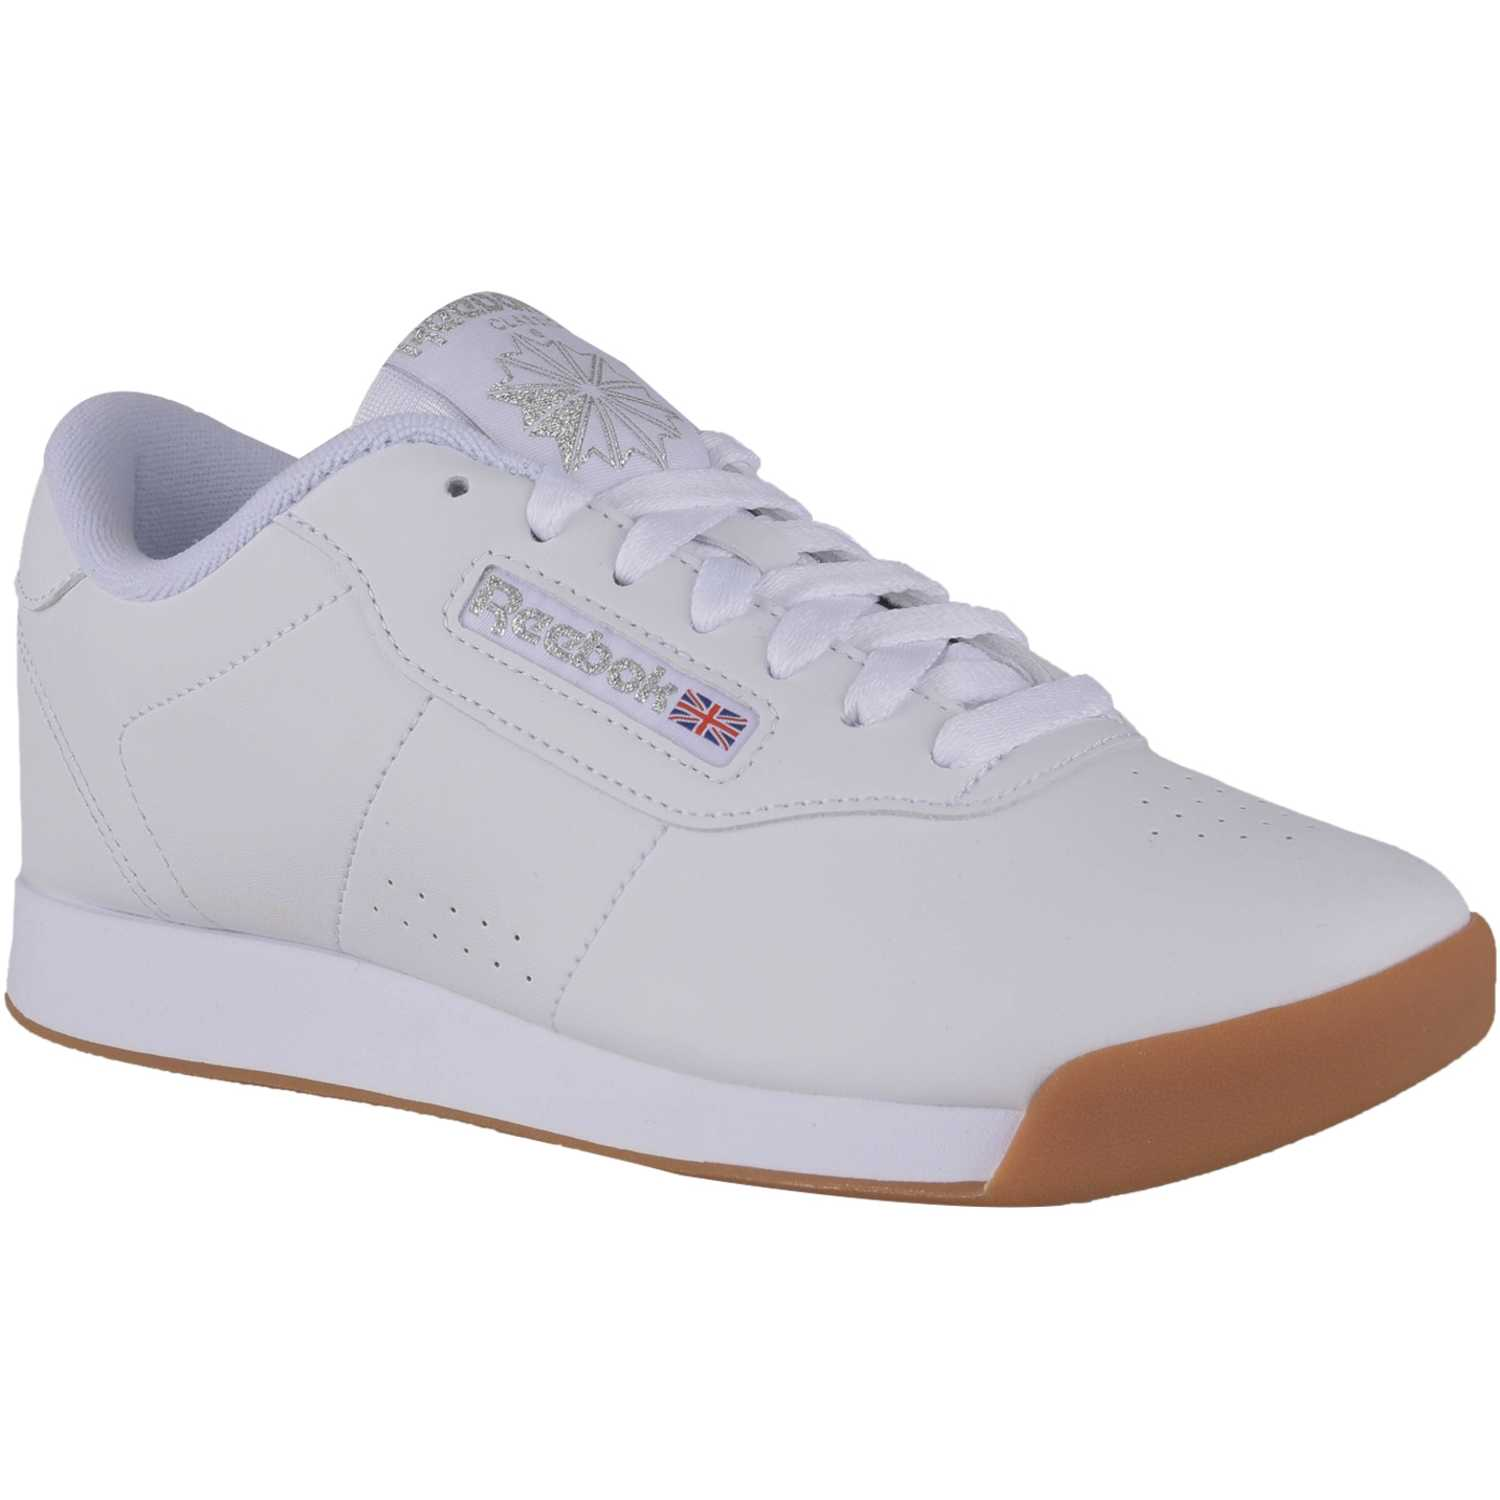 Reebok PRINCESS Blanco / marrón Mujeres